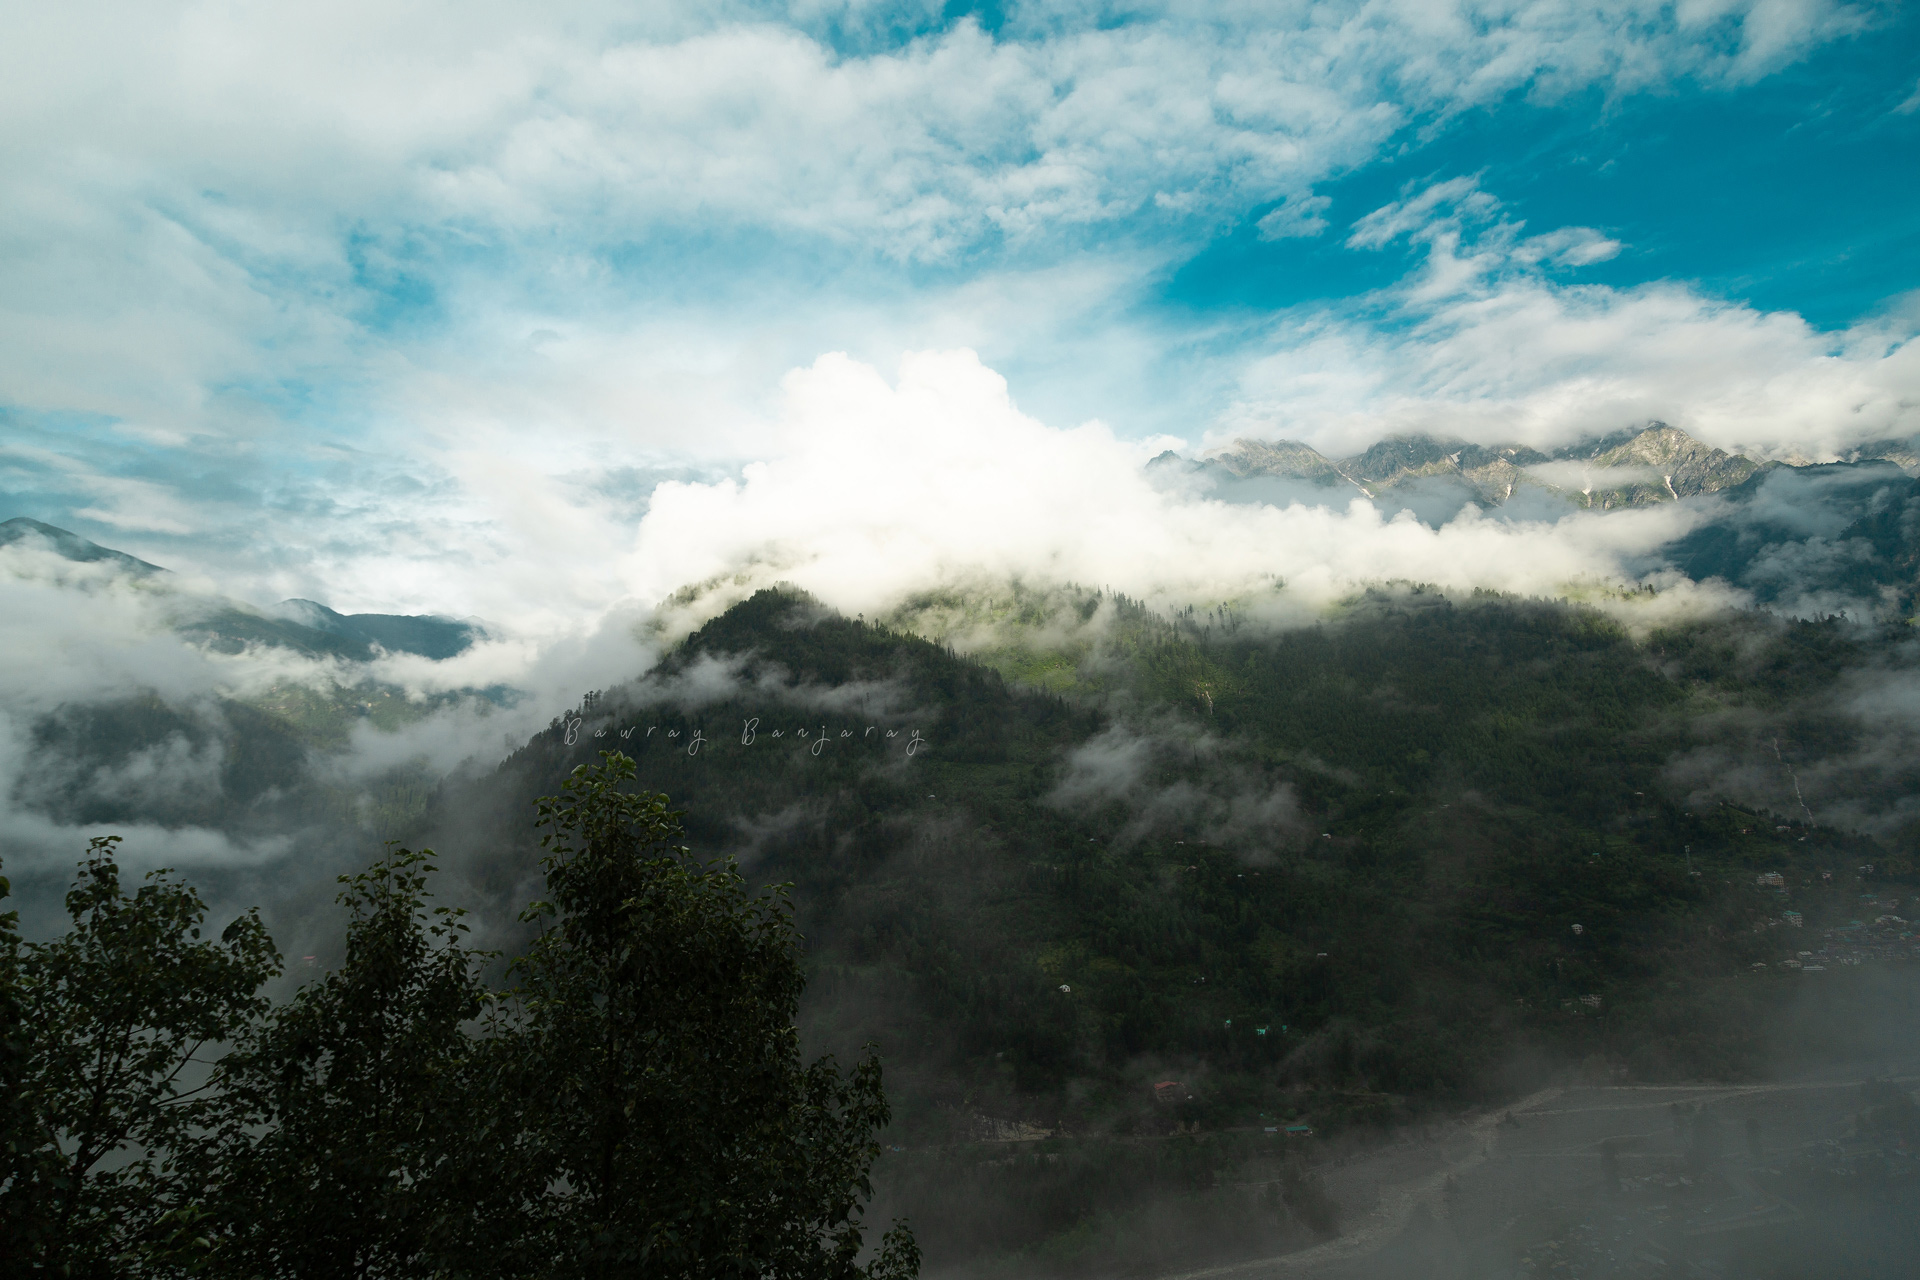 Cloud play at manali